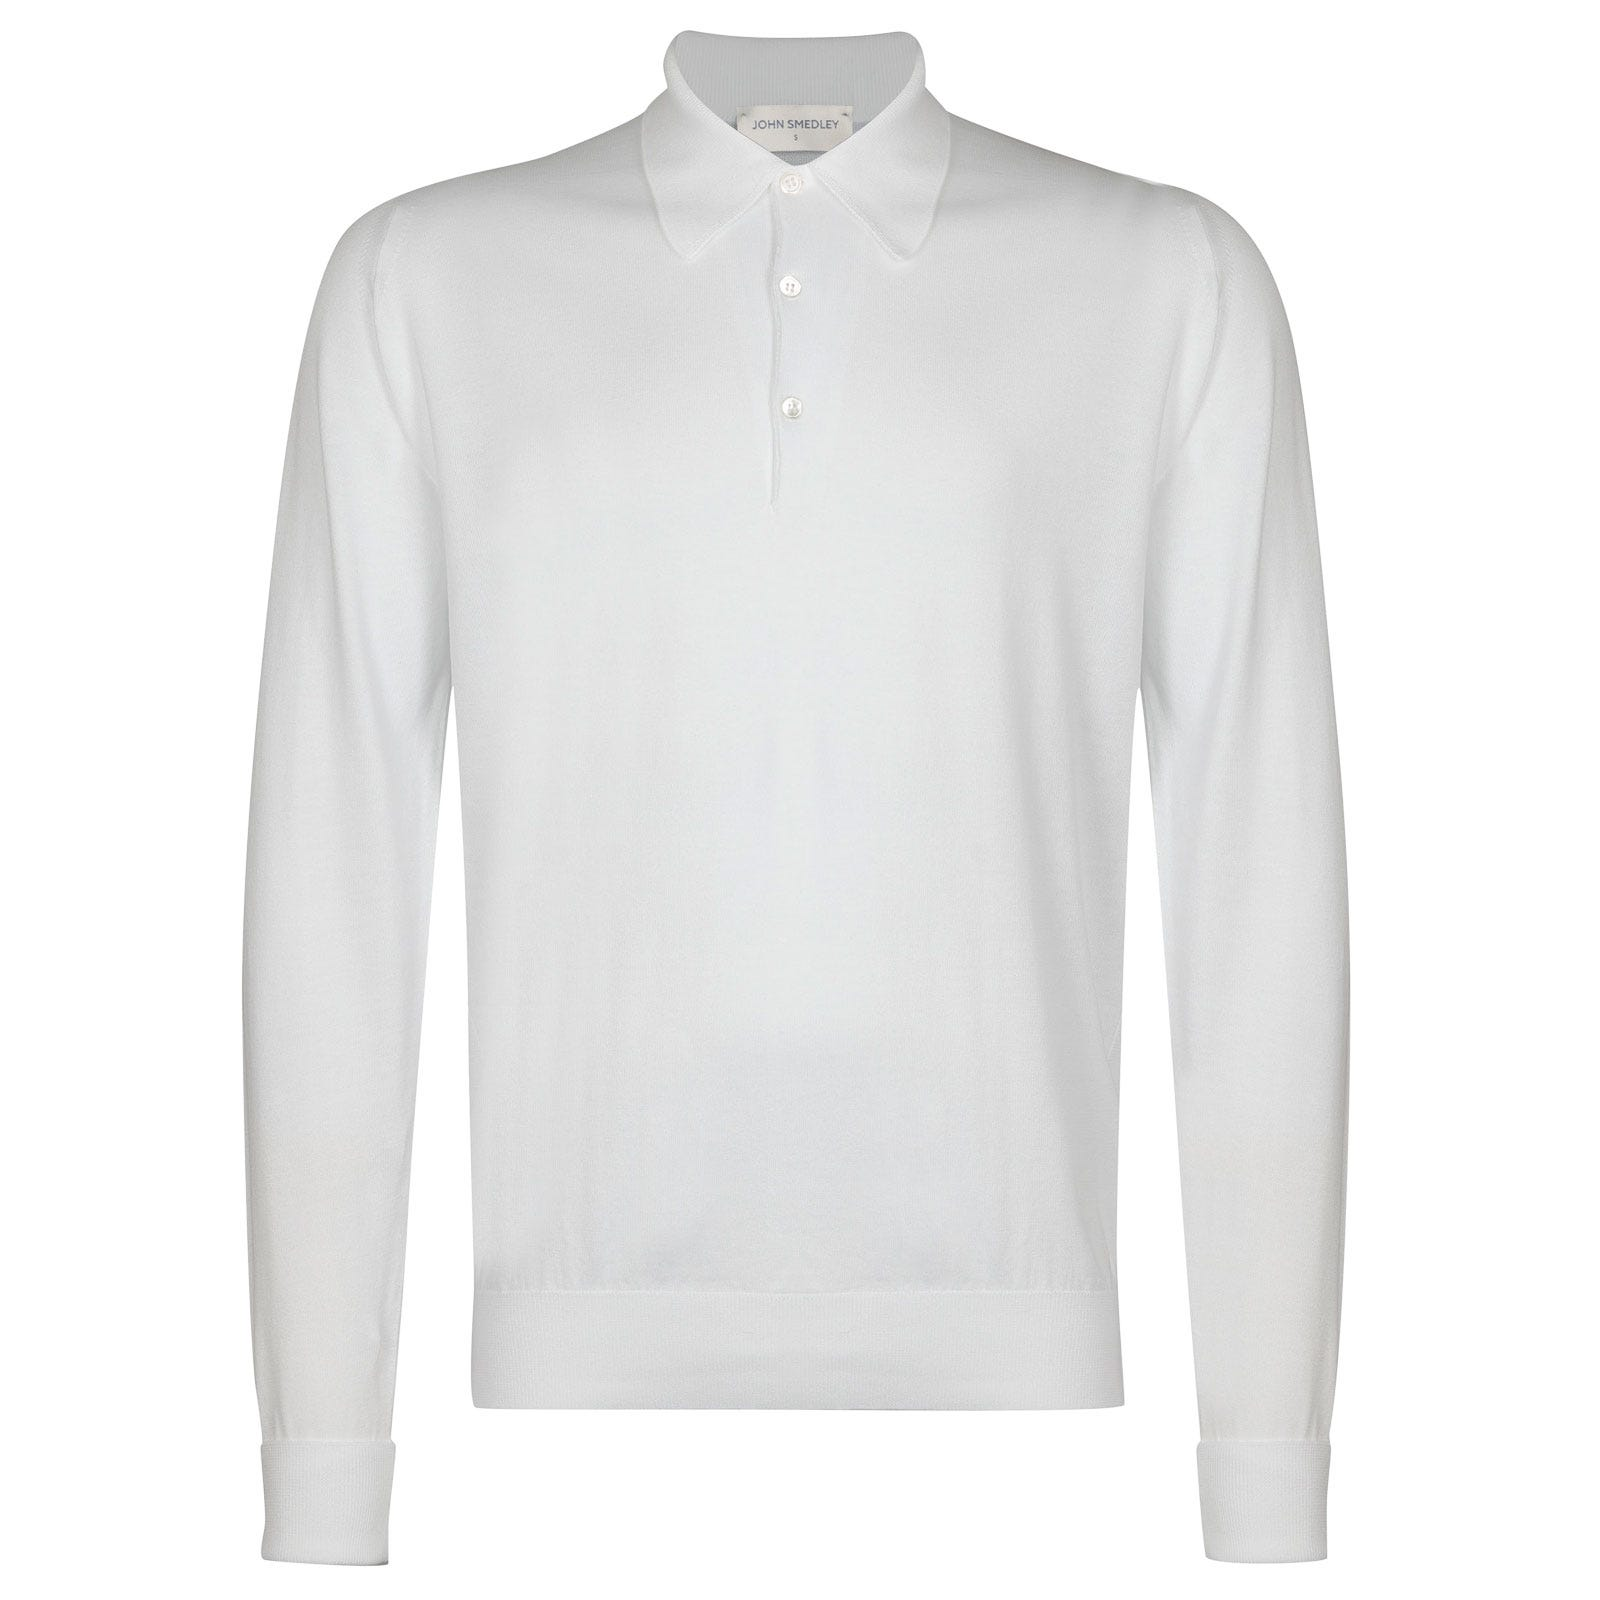 John Smedley finchley Sea Island Cotton Shirt in White-M